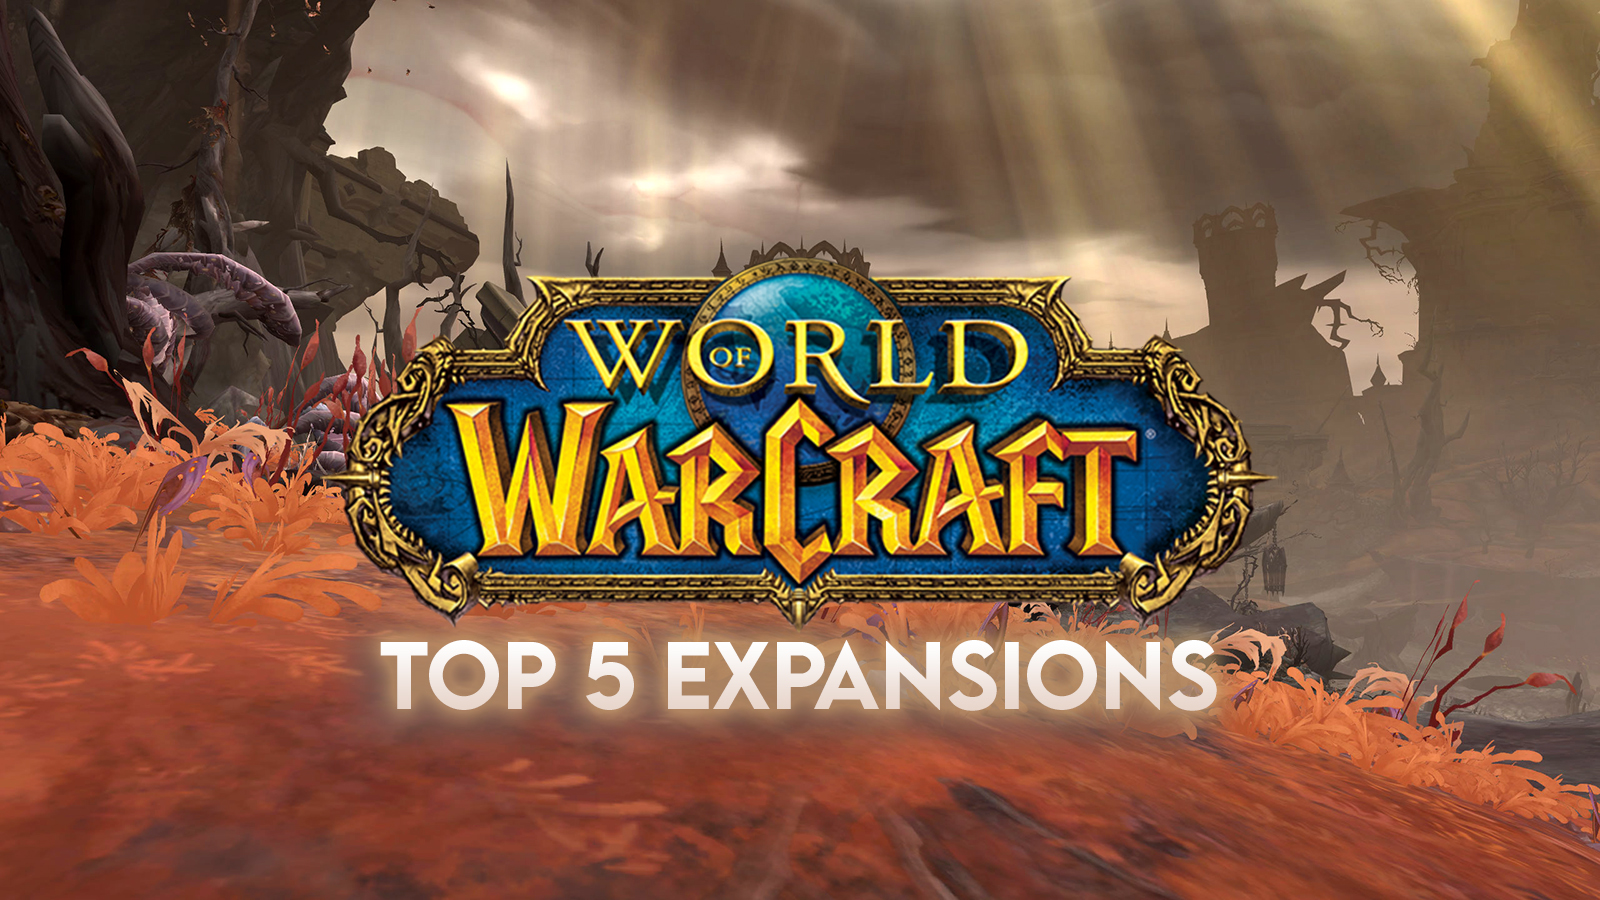 Top 5 WoW Expansion image